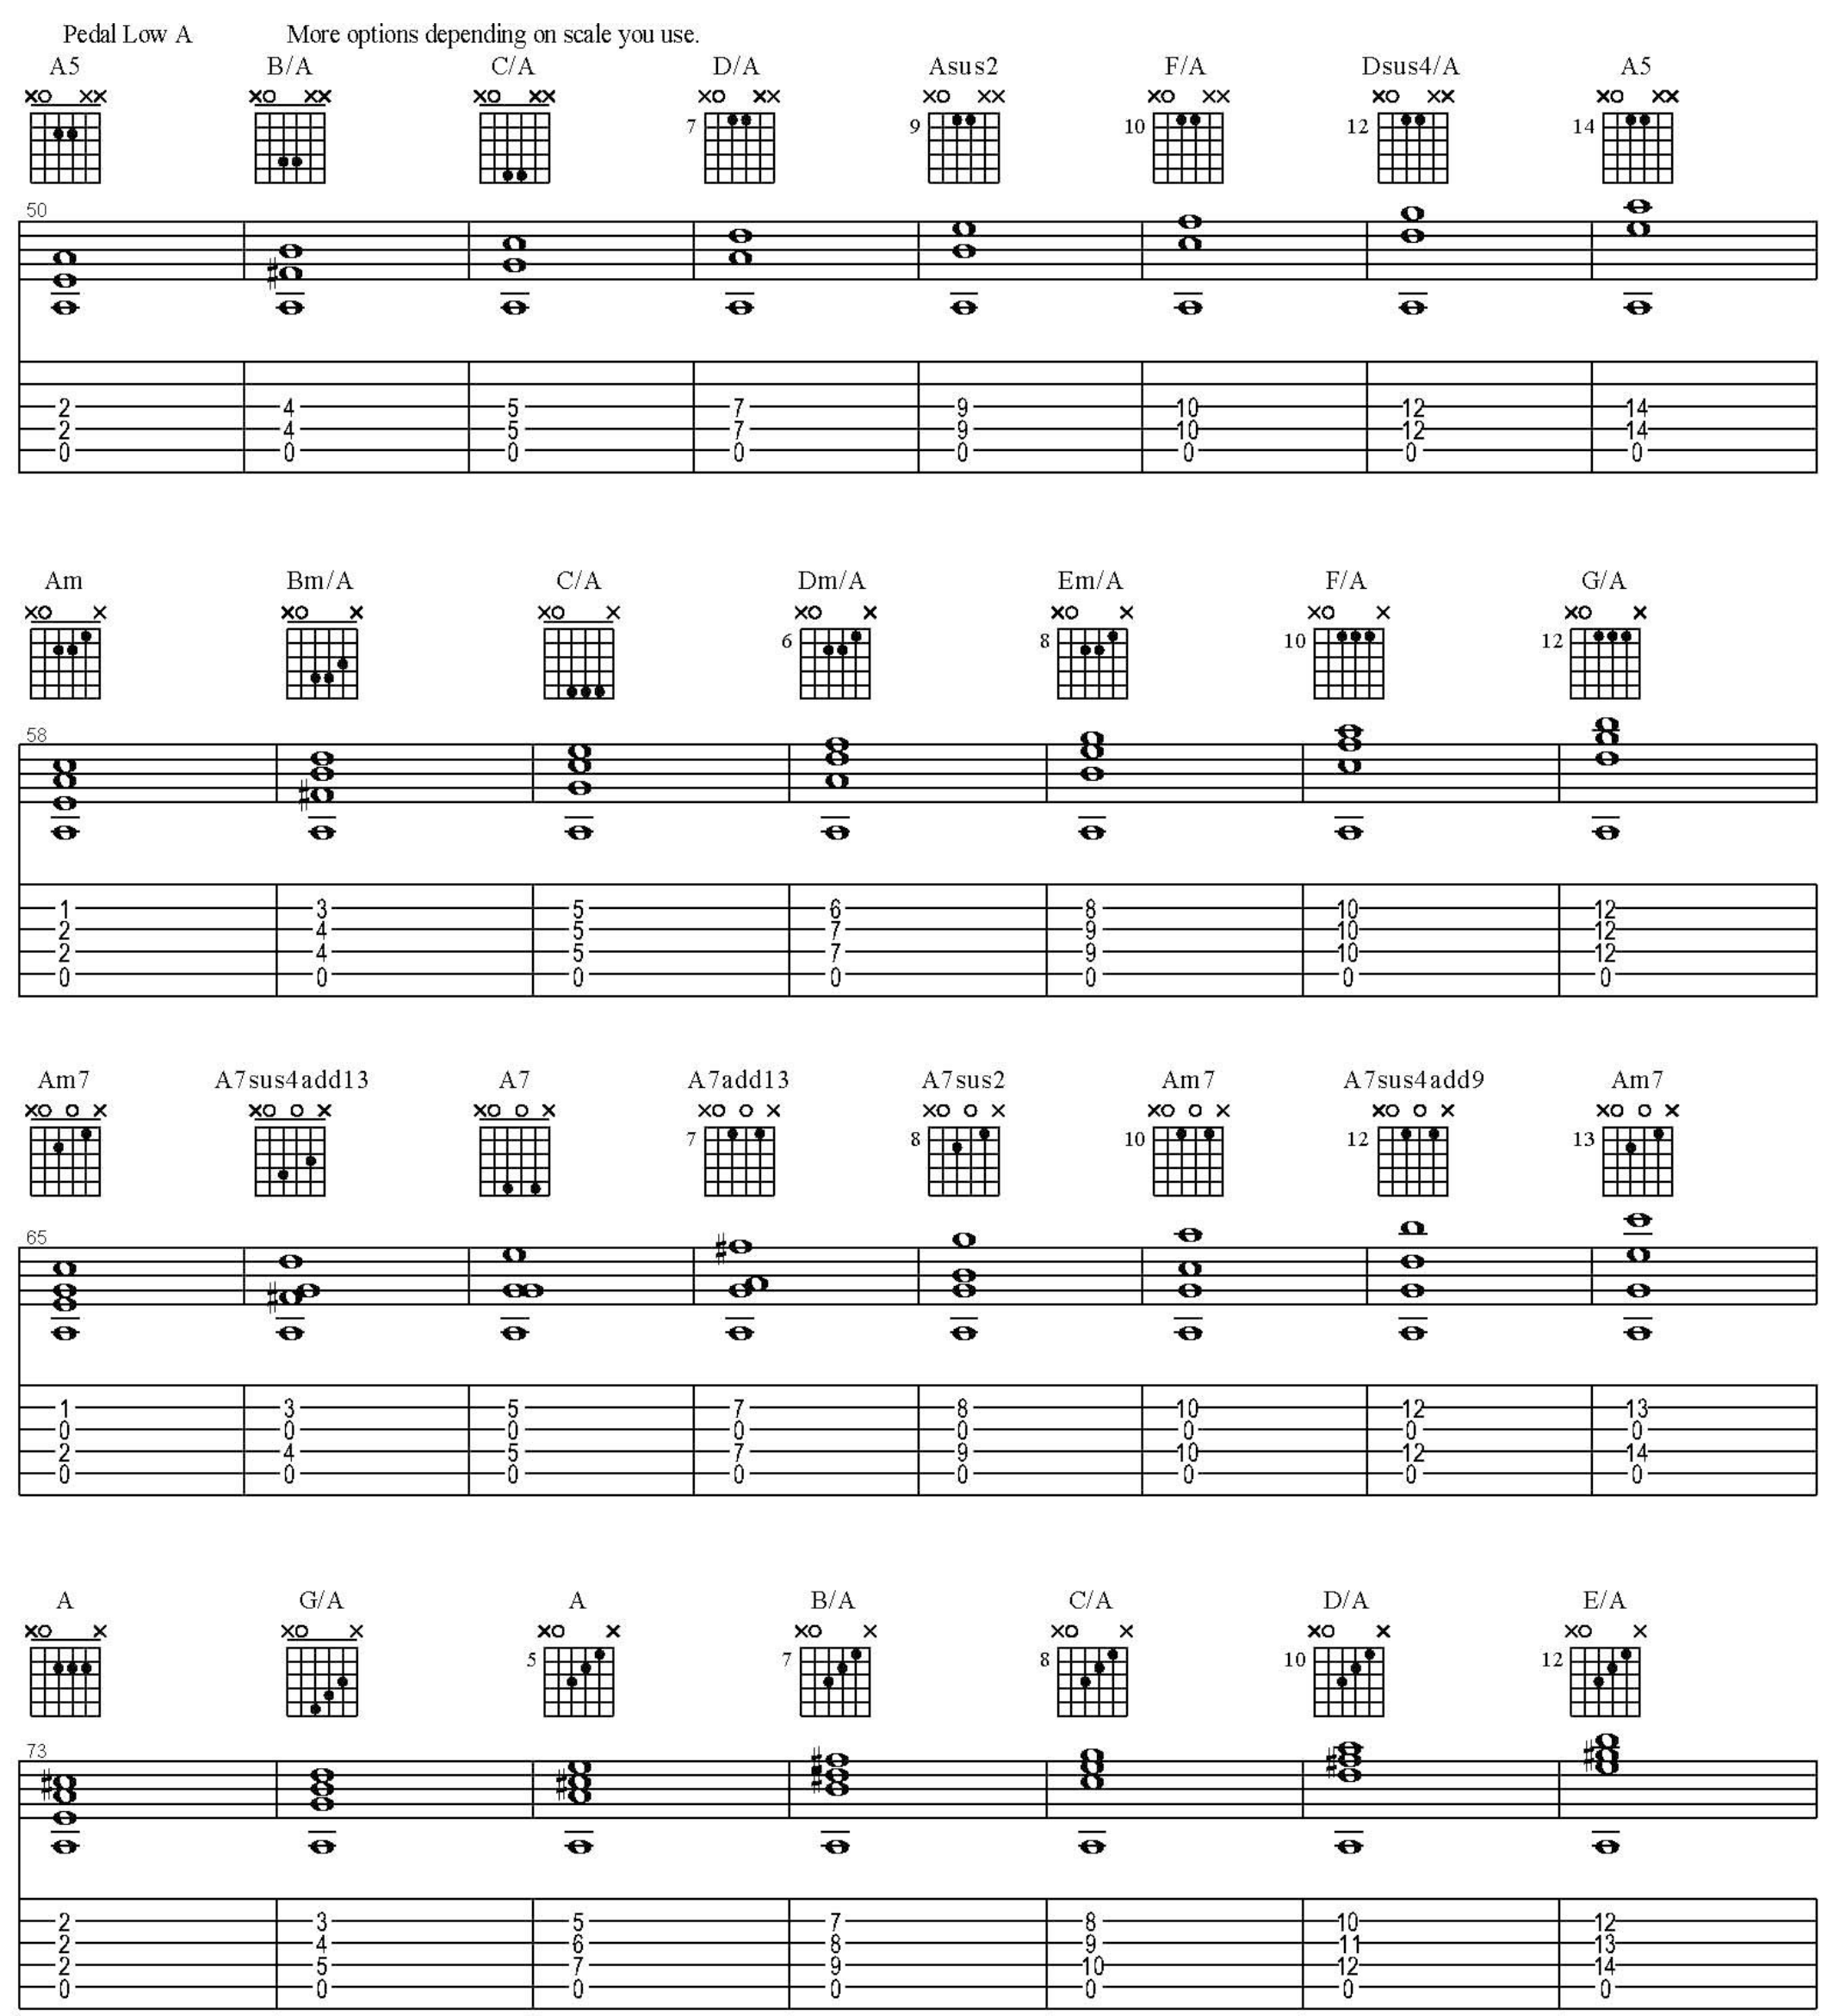 Chord tricks article examples low d wish you were here chicago eight days a week beatles dont dream its over crowded house chords used hexwebz Image collections